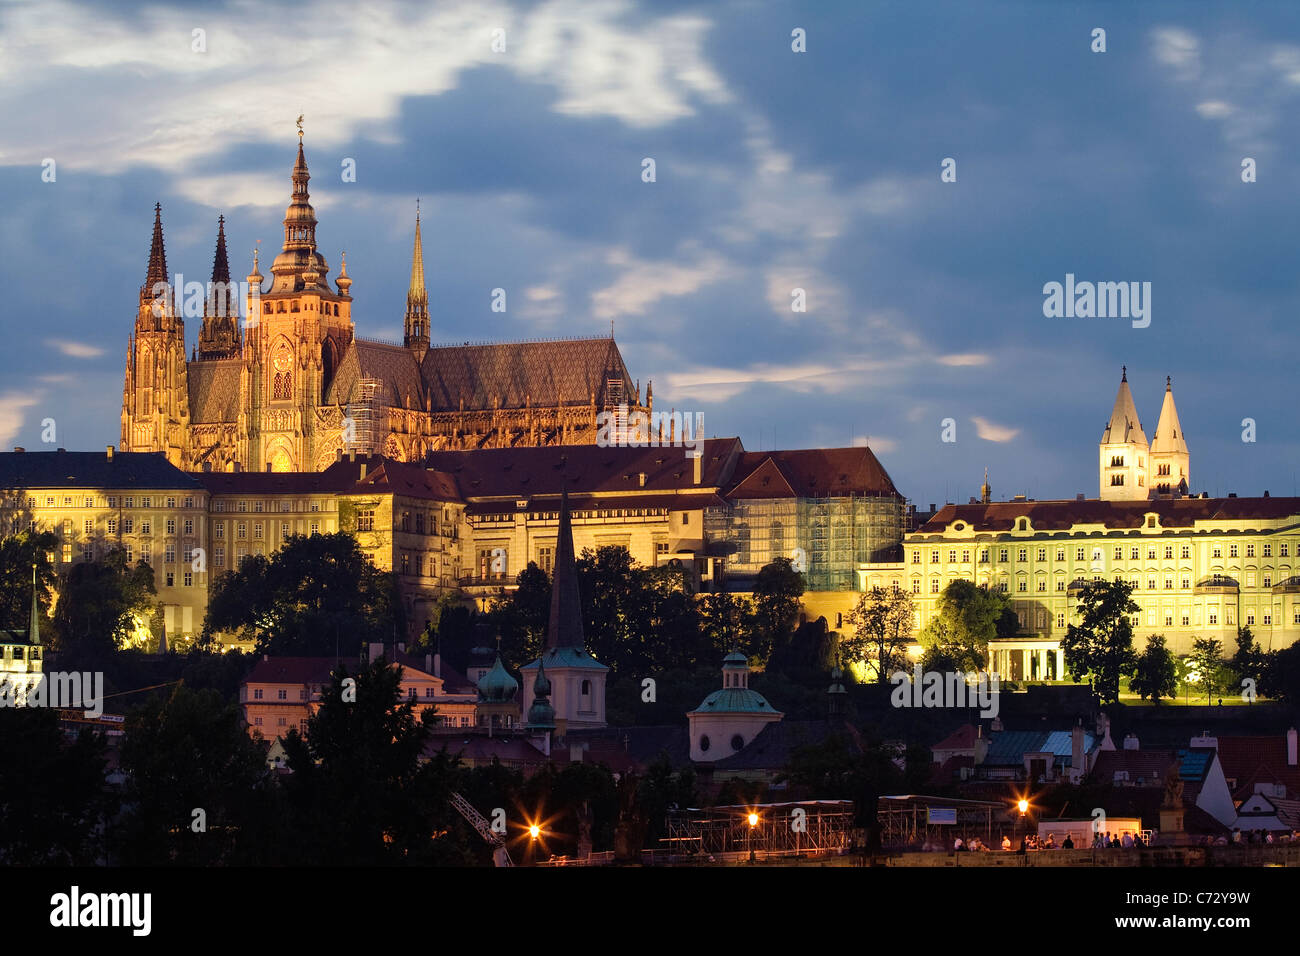 Evening mood at the Charles Bridge with Prague Castle, Hradcany, Prague, Czech Republic, Europe - Stock Image